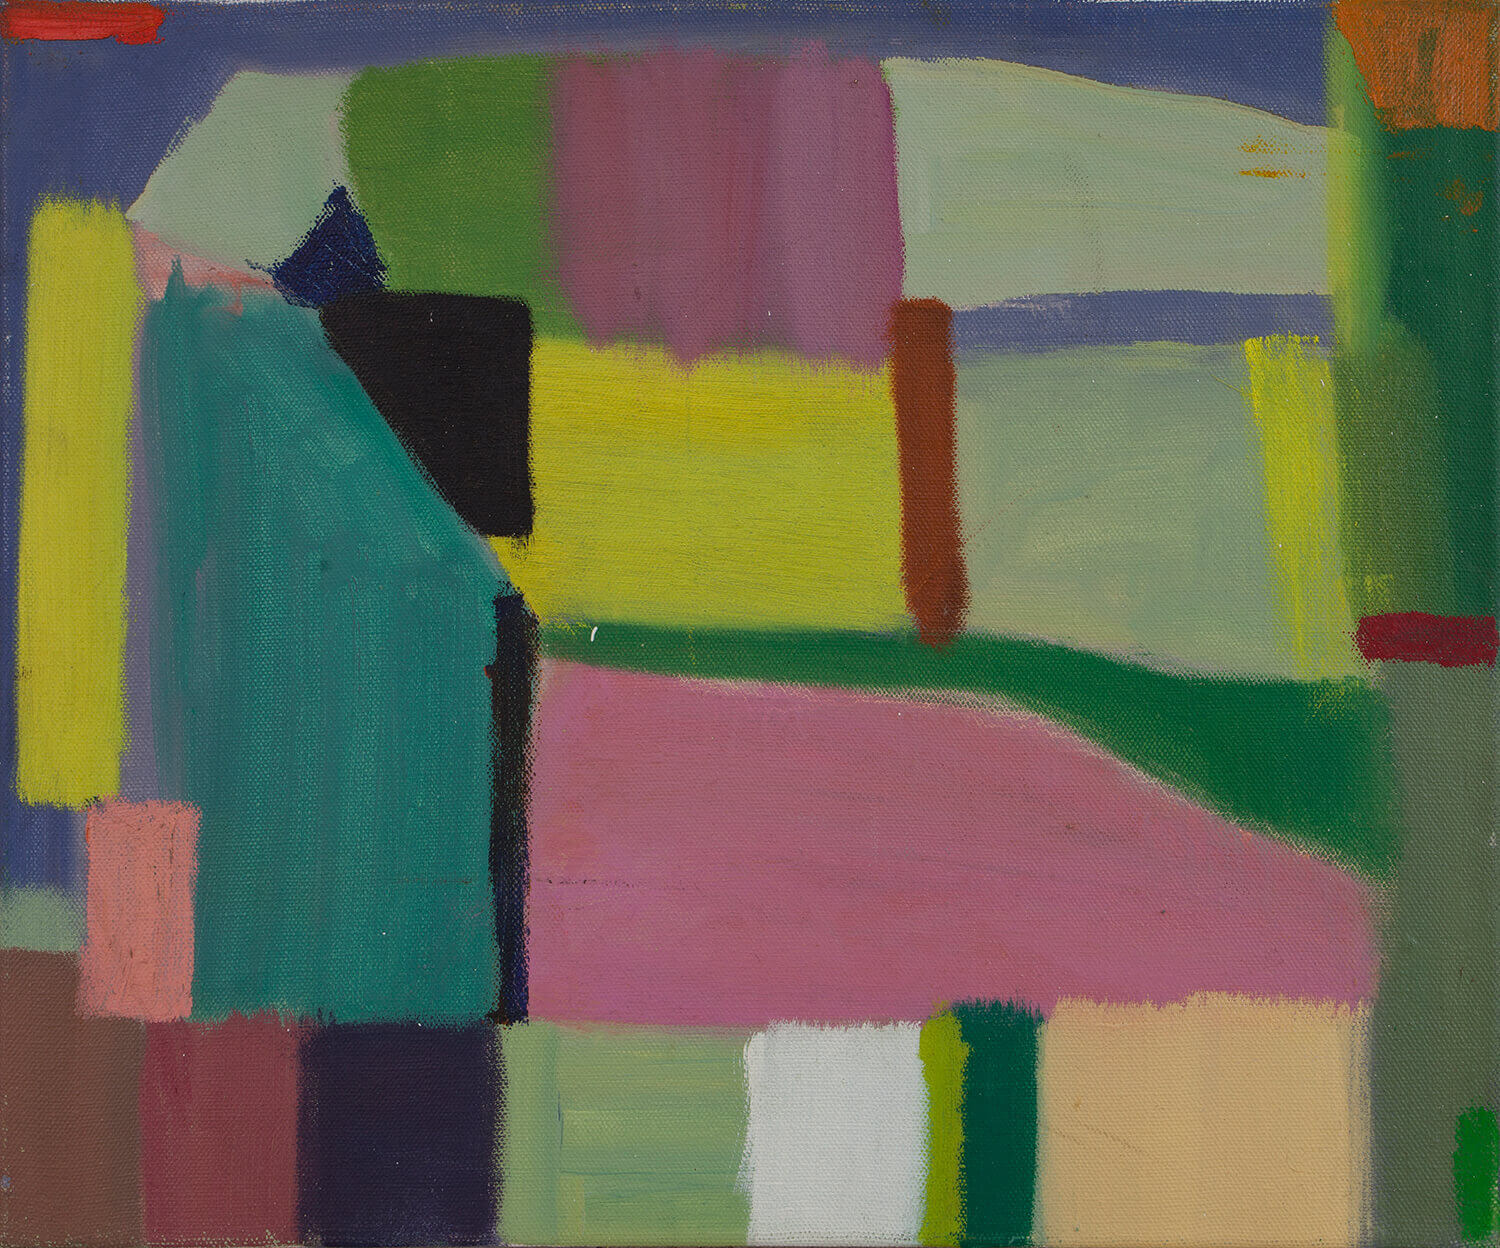 Painting composition, 2016